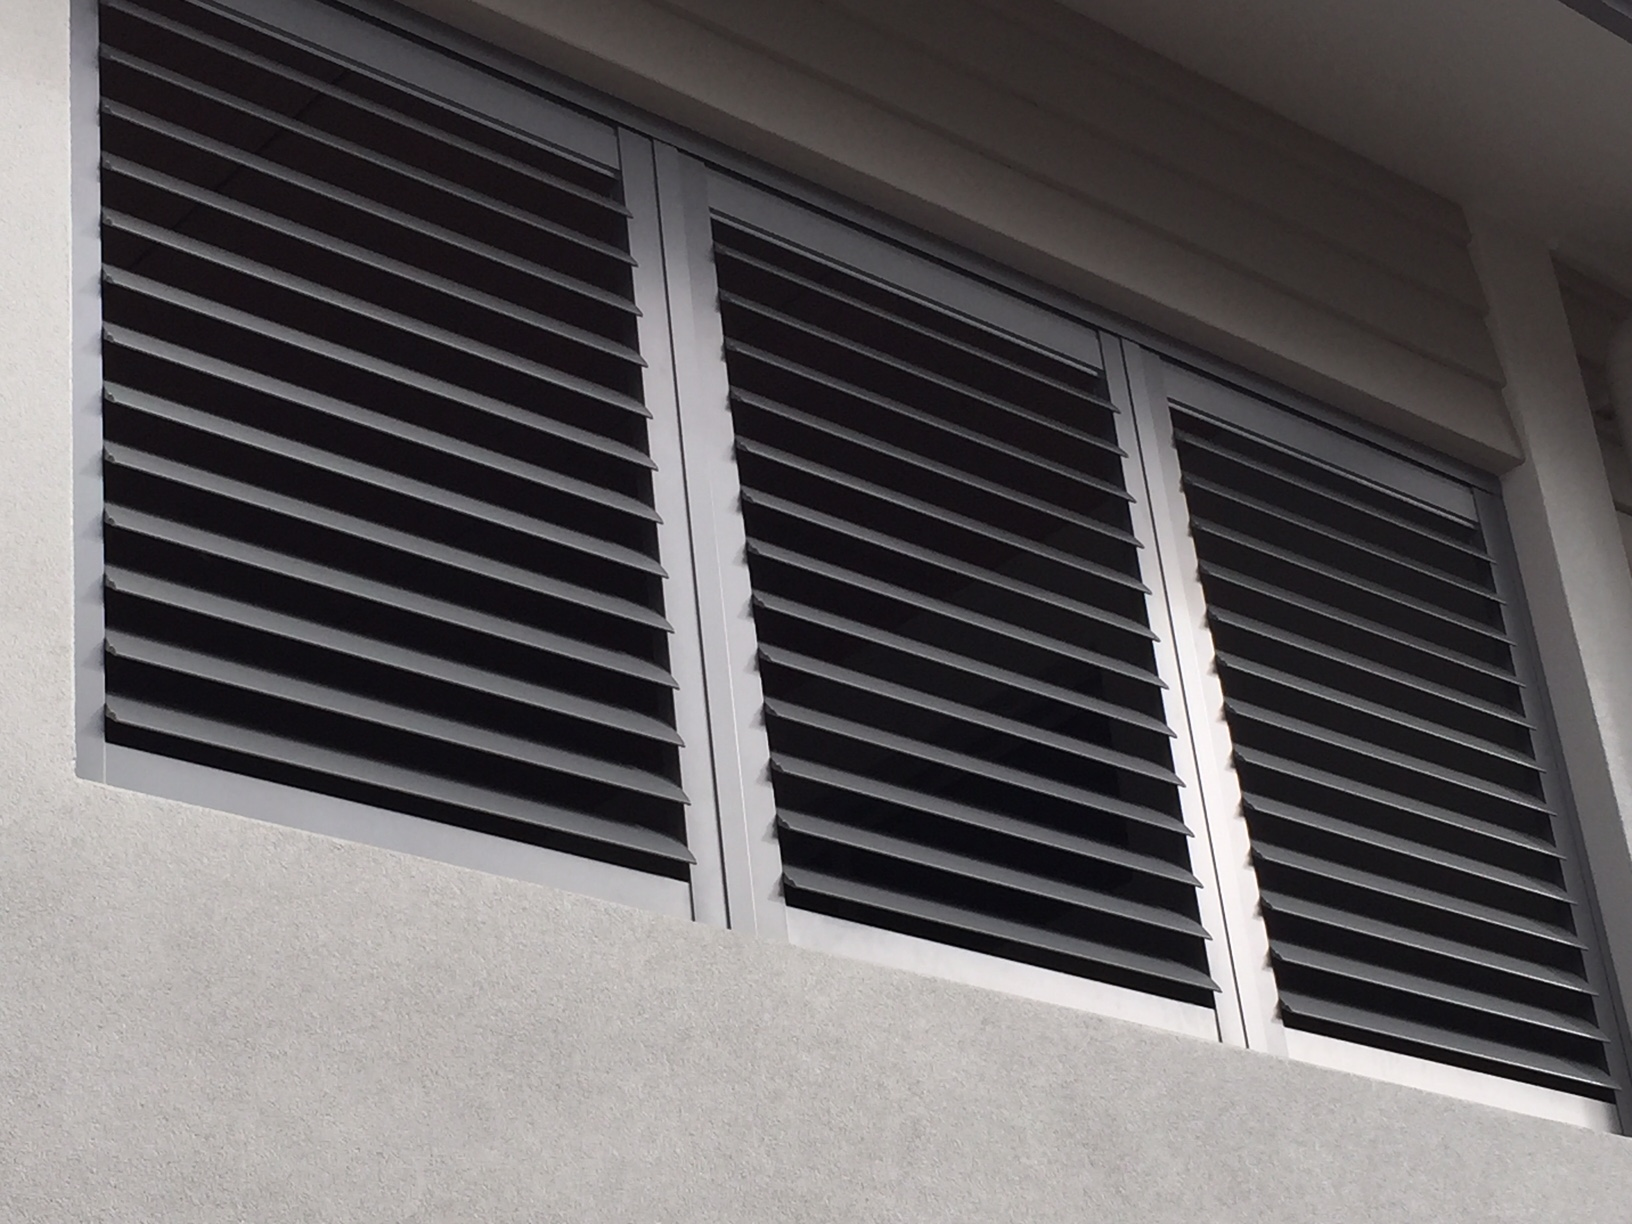 Fixed Angle Shutters